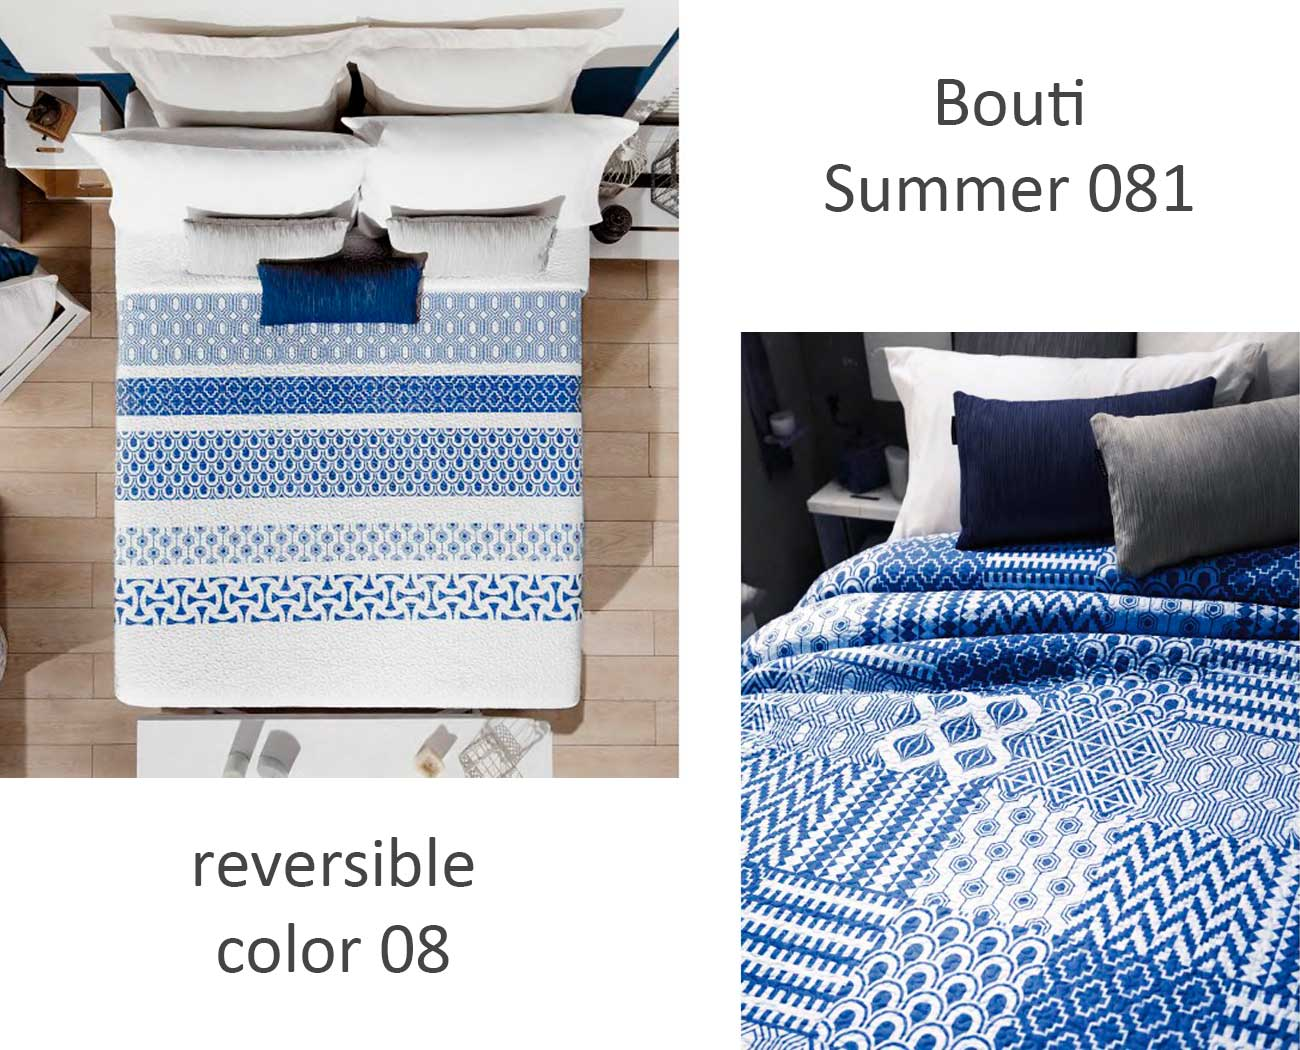 COLCHA BOUTI SUMMER 081 color 08 90 cms